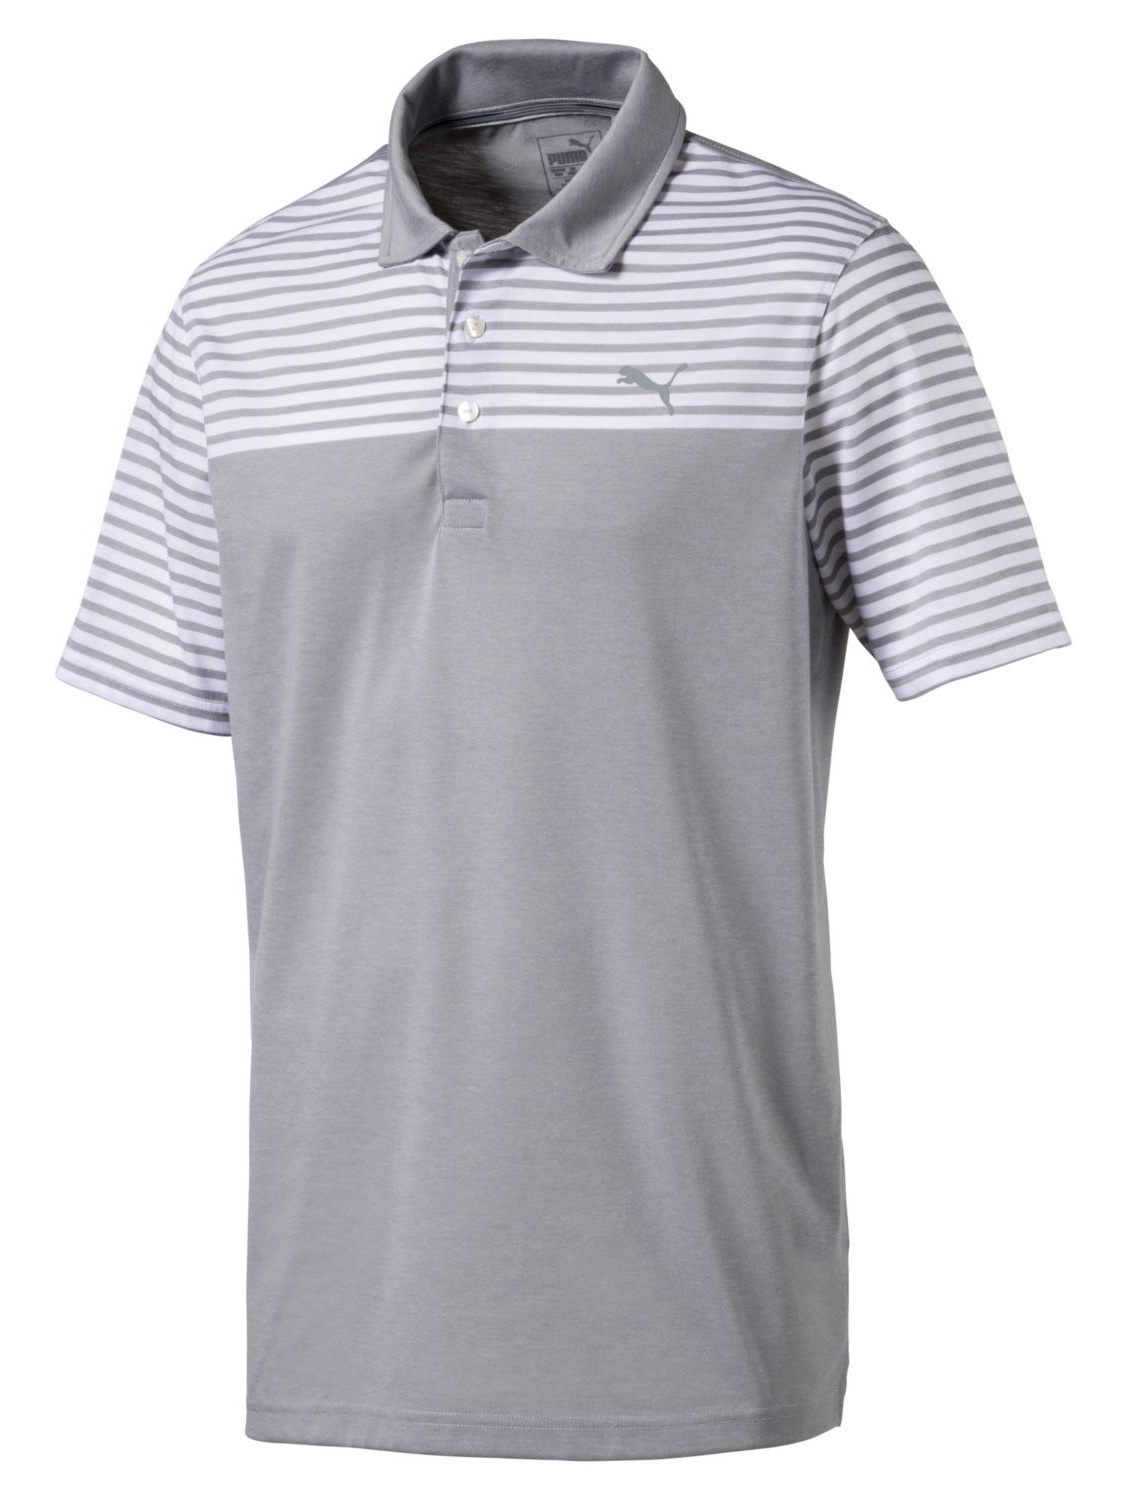 PUMA CLUBHOUSE POLO MENS GOLF SHIRT 574614 -New 2018- PICK SIZE & COLOR! by Puma